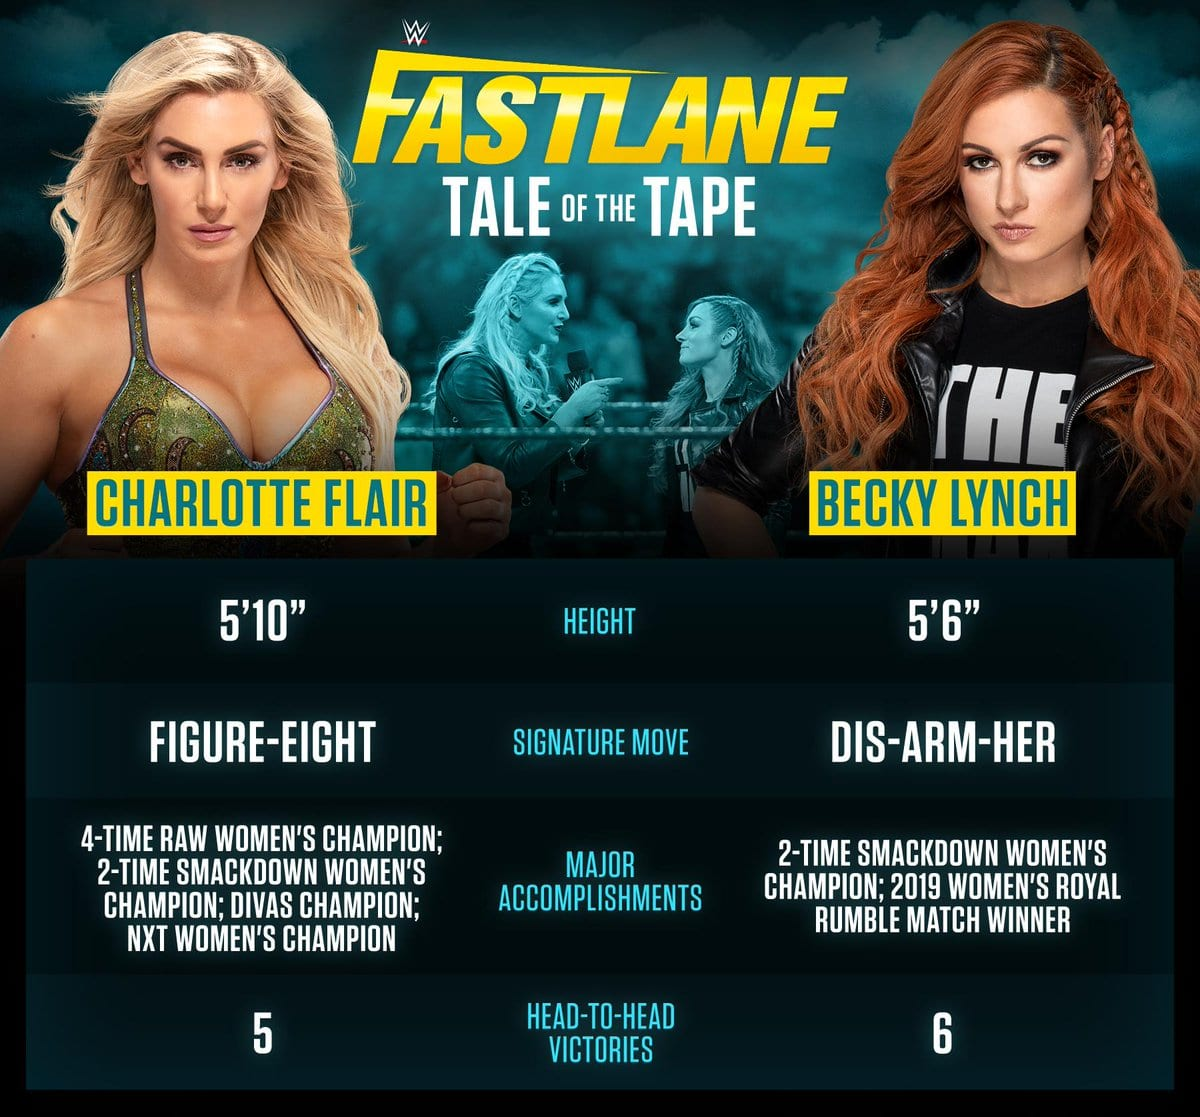 Charlotte Flair vs. Becky Lynch - Tale Of The Tape (WWE FastLane 2019)